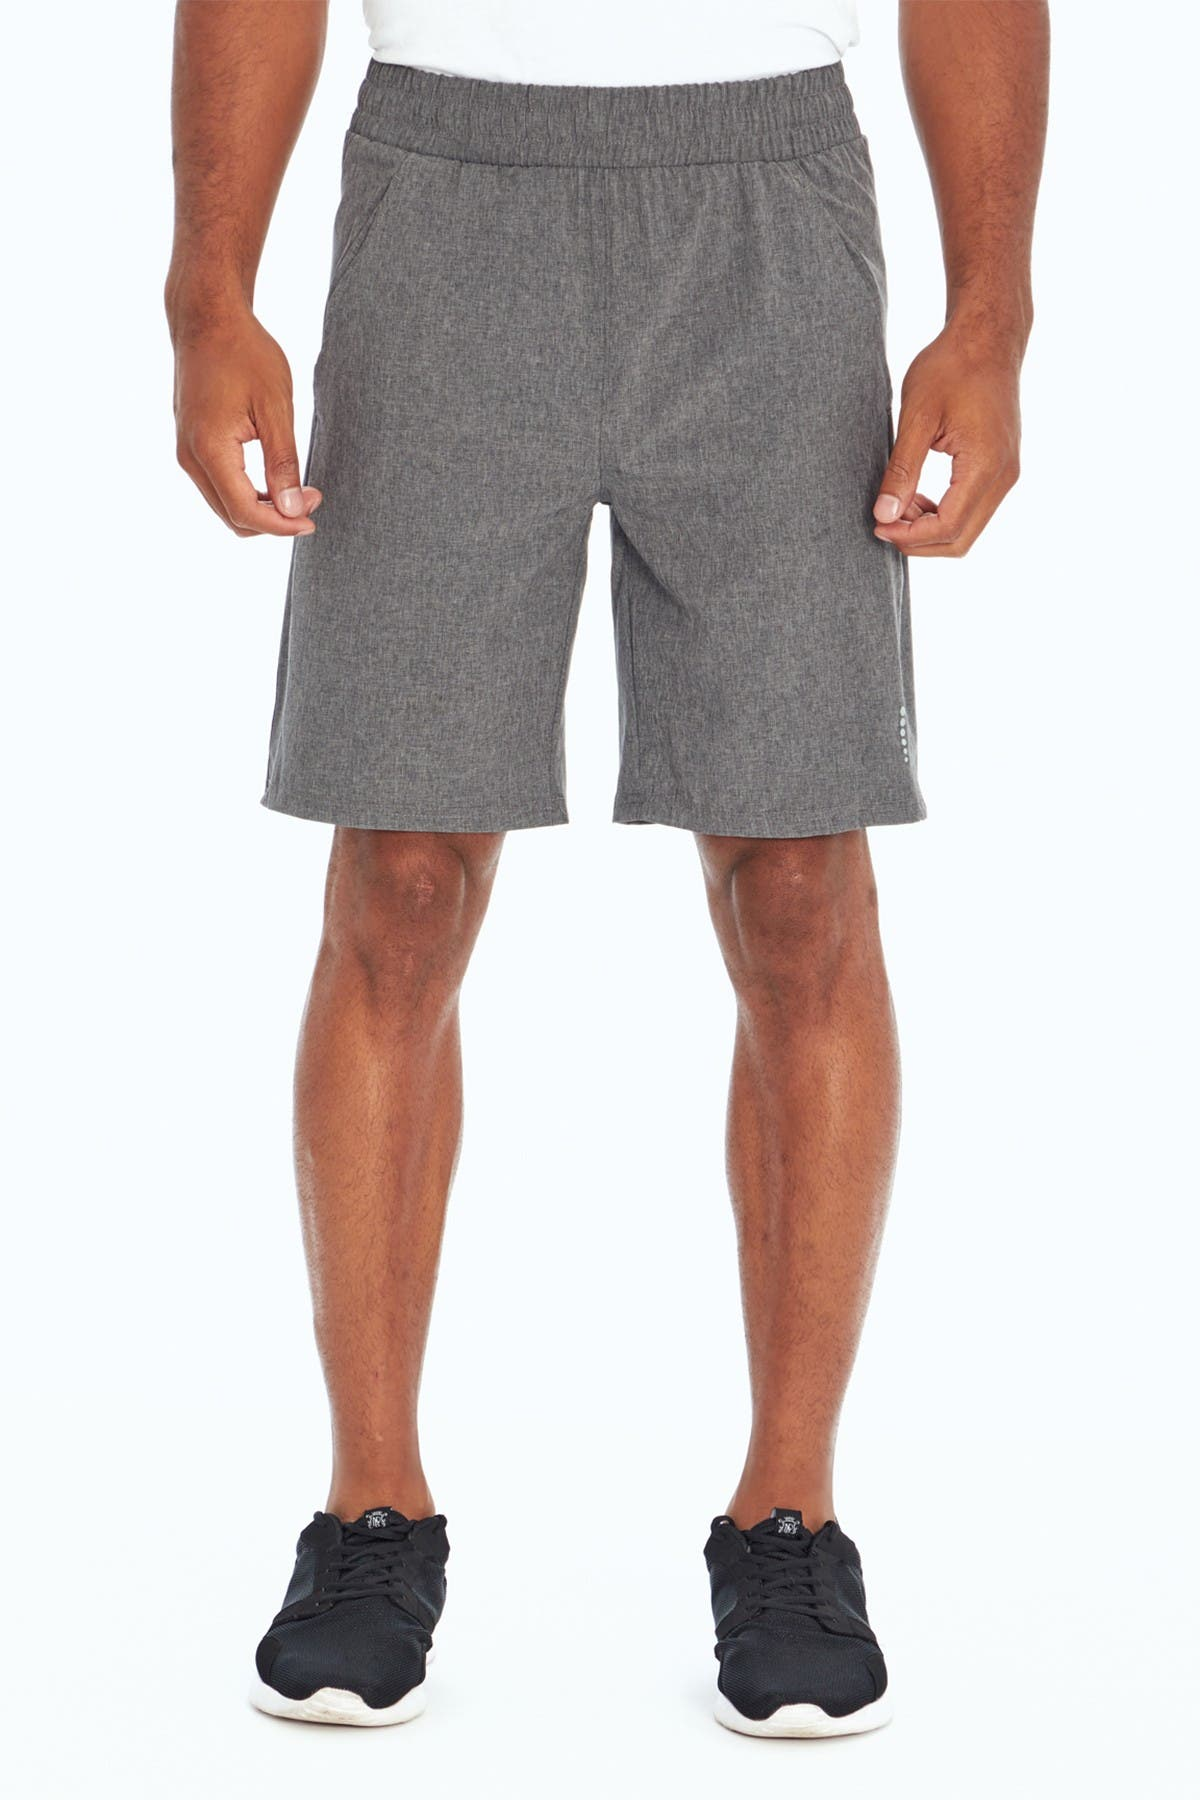 Image of The Balance Collection Cameron Shorts